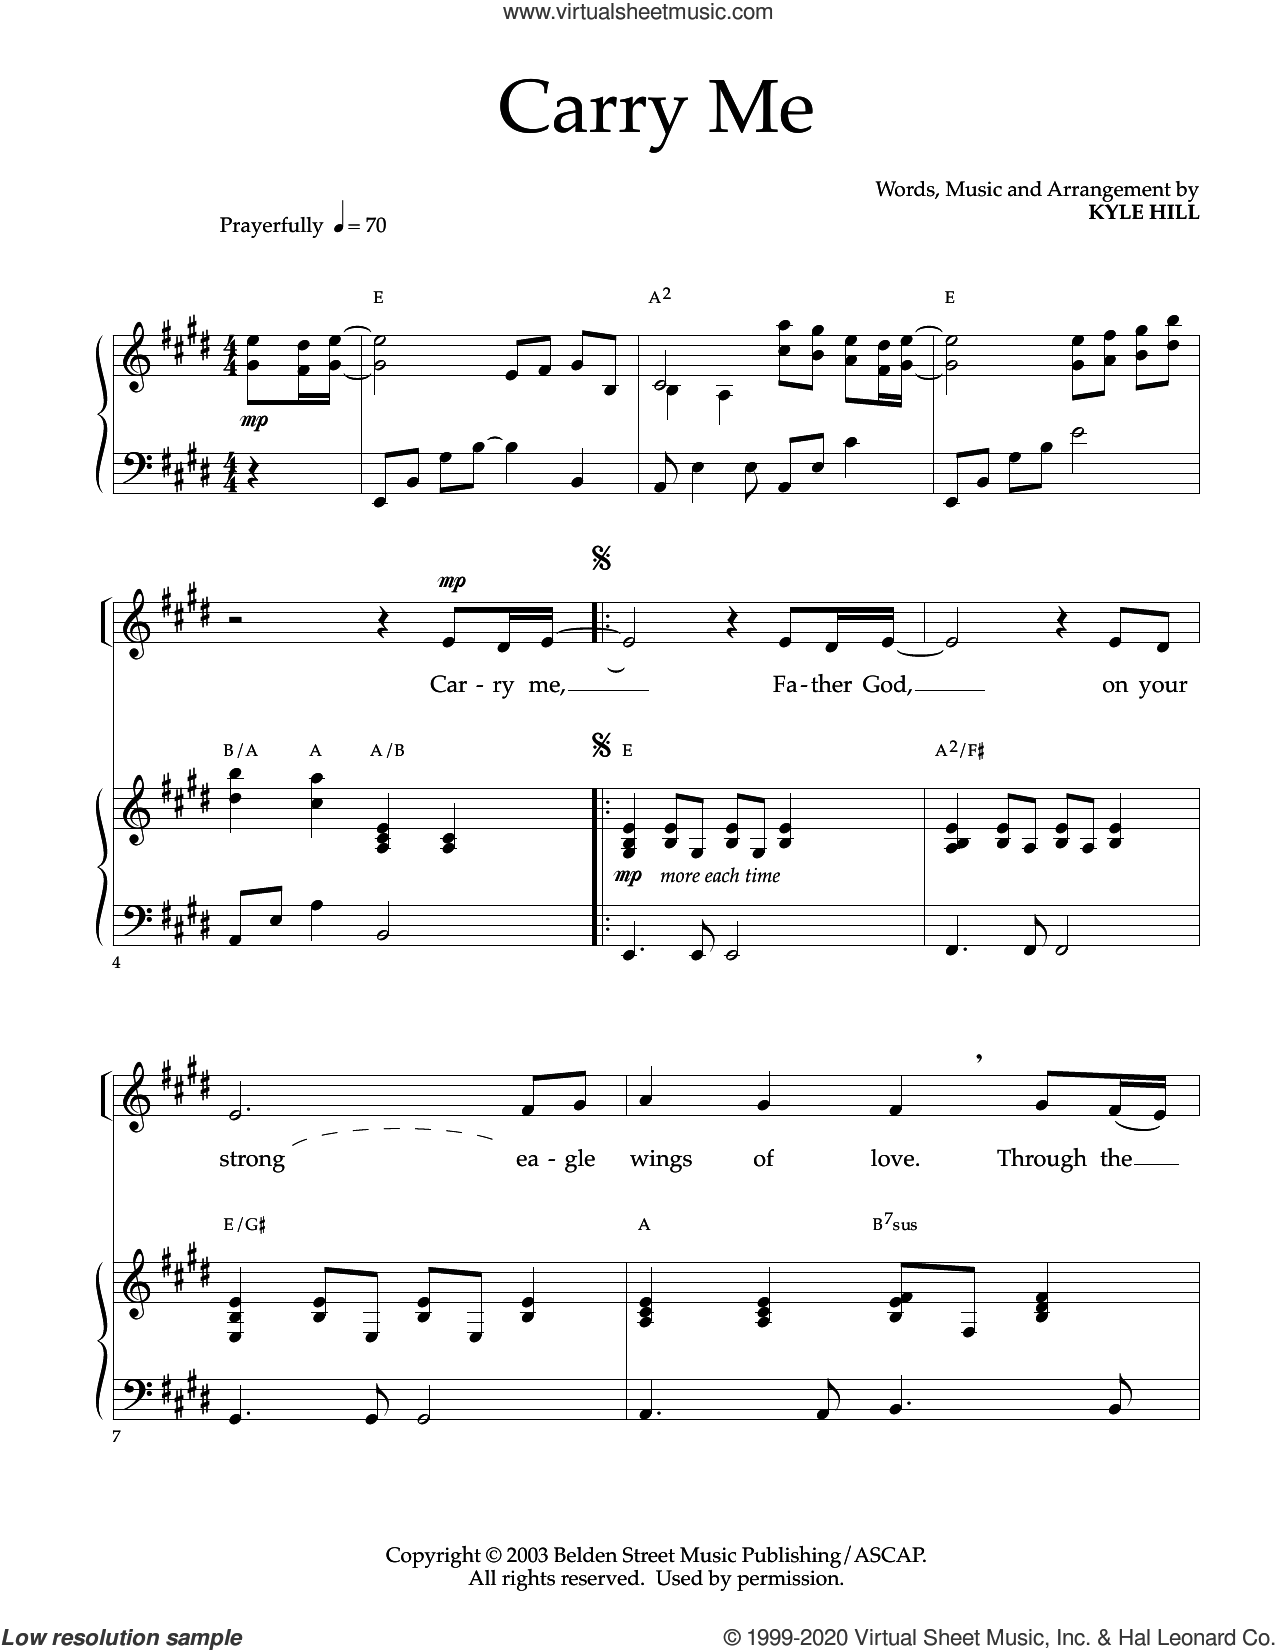 Carry Me sheet music for voice and piano by Kyle Hill, intermediate skill level